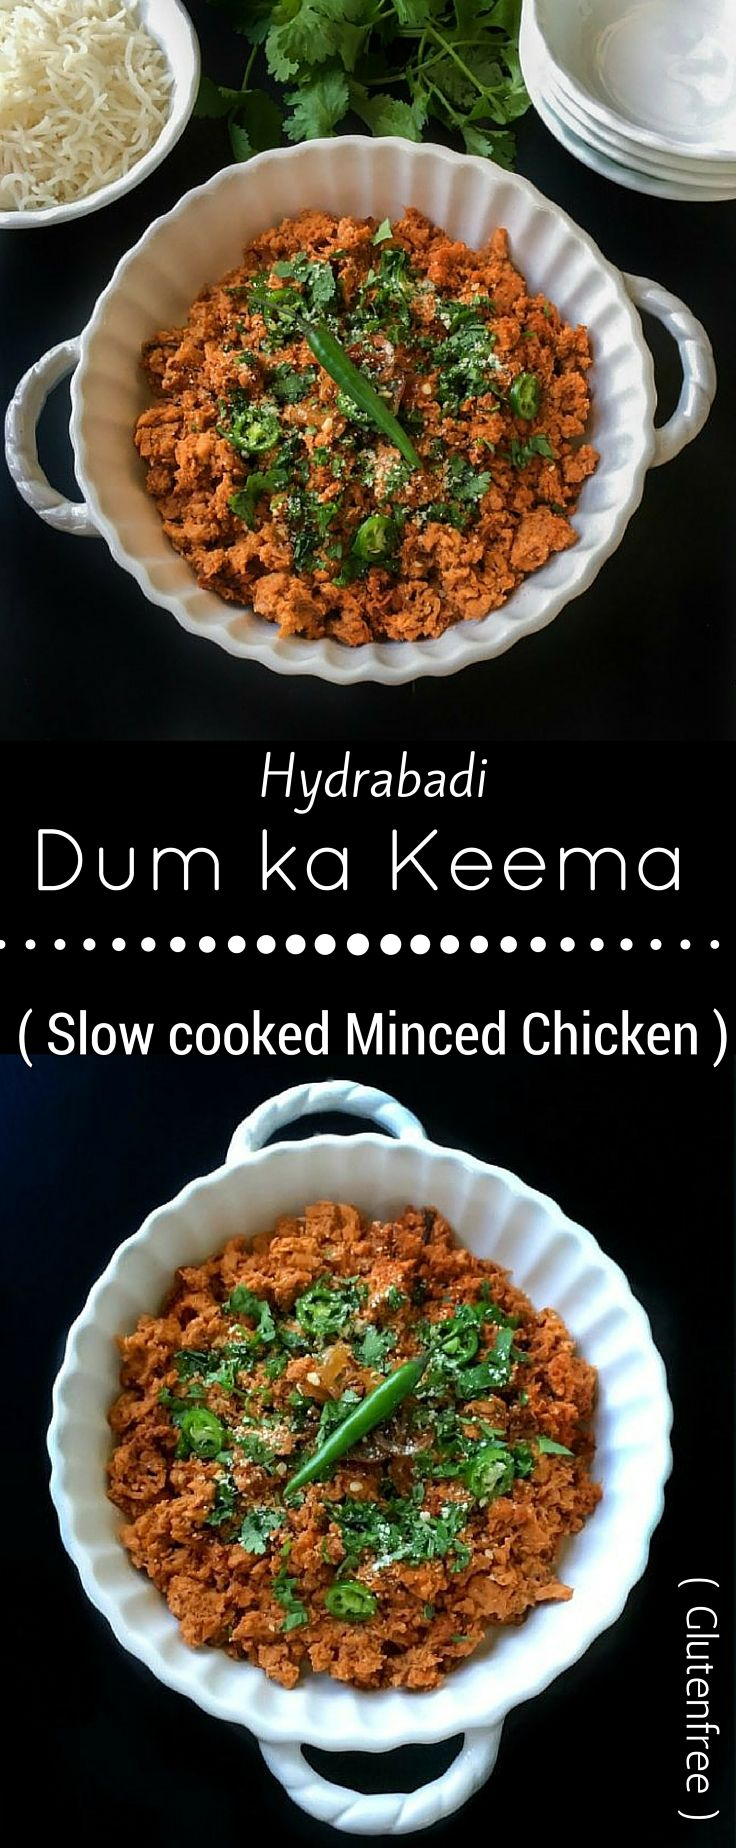 Chicken Keema. Maybe add some frozen peas to this dish as well.